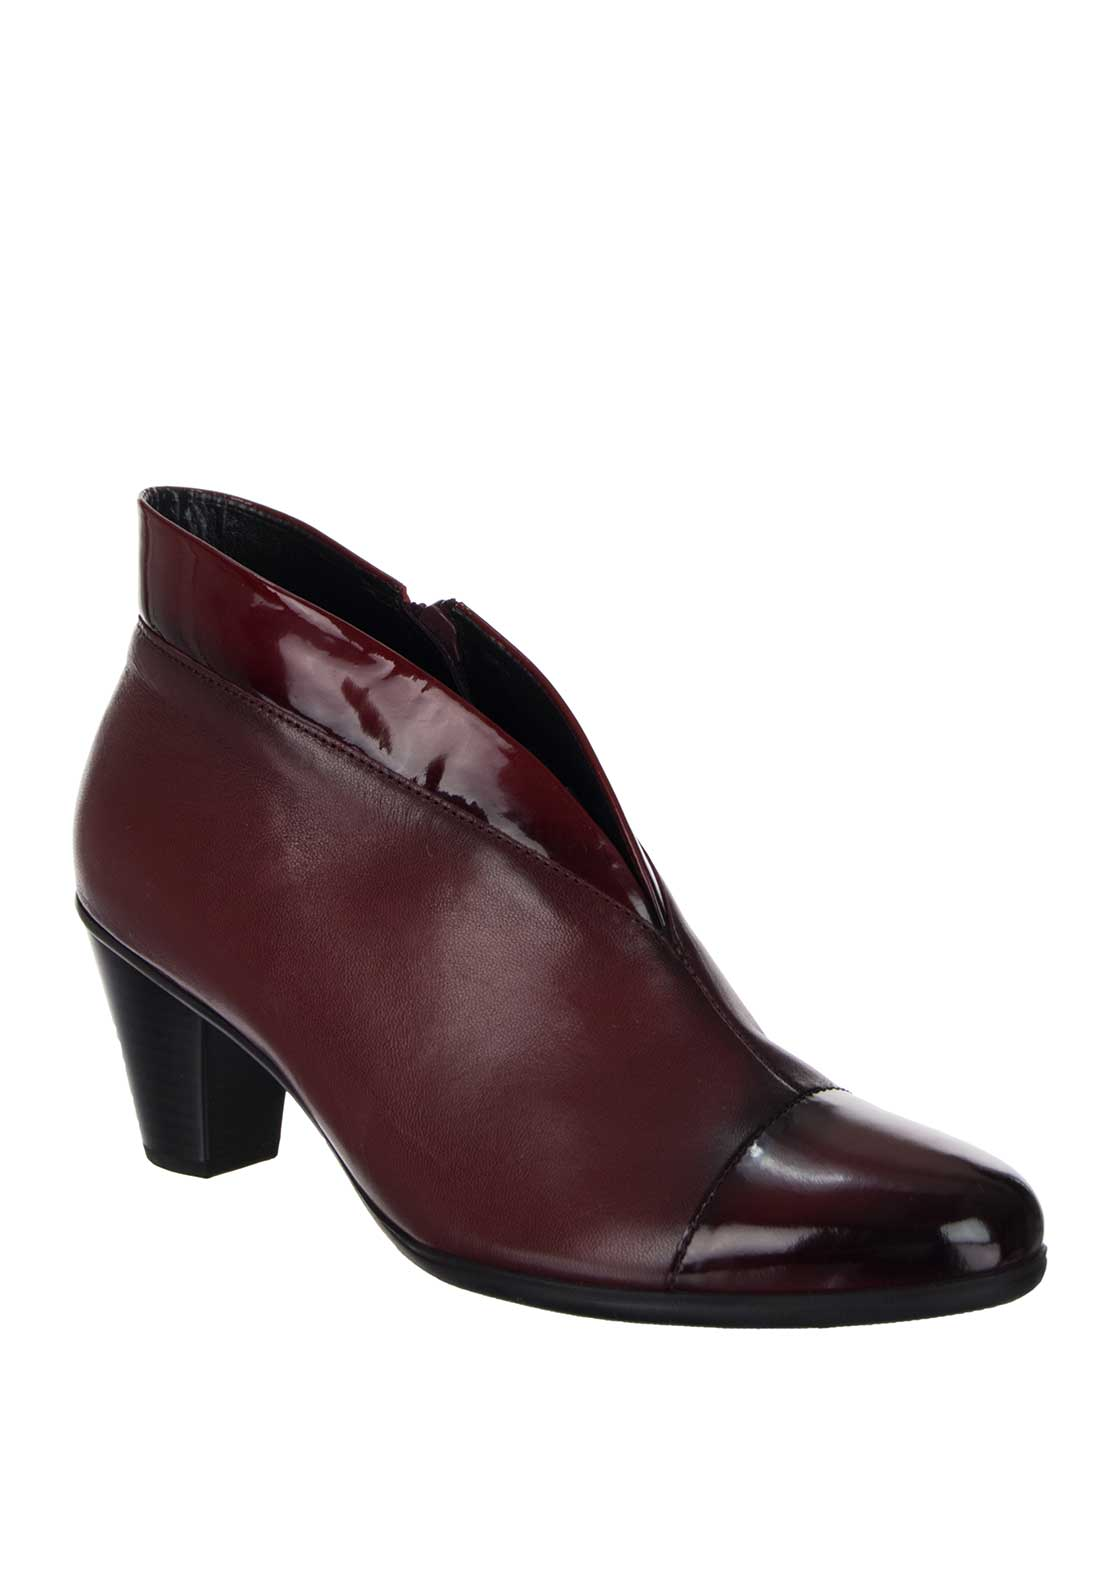 Gabor Enfield Womens Ankle Boot, Dark Red Patent